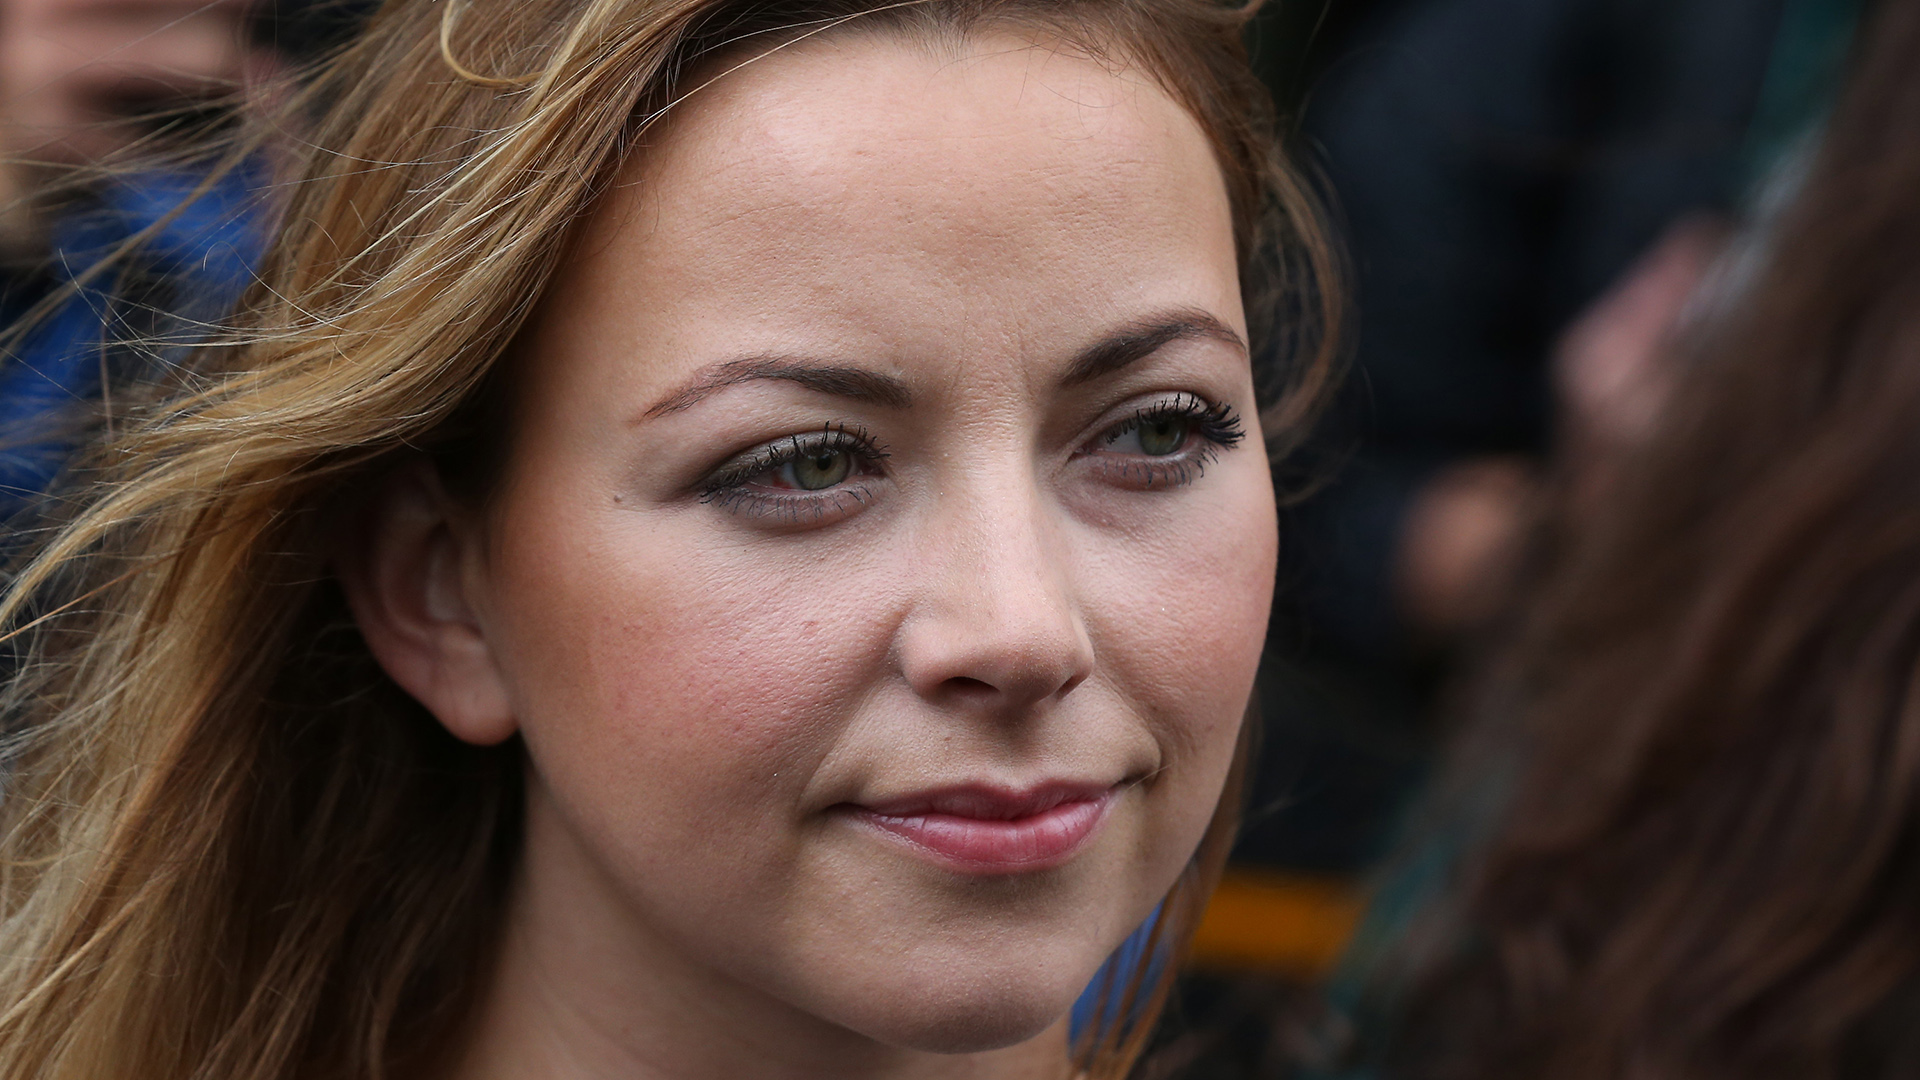 charlotte church - photo #37